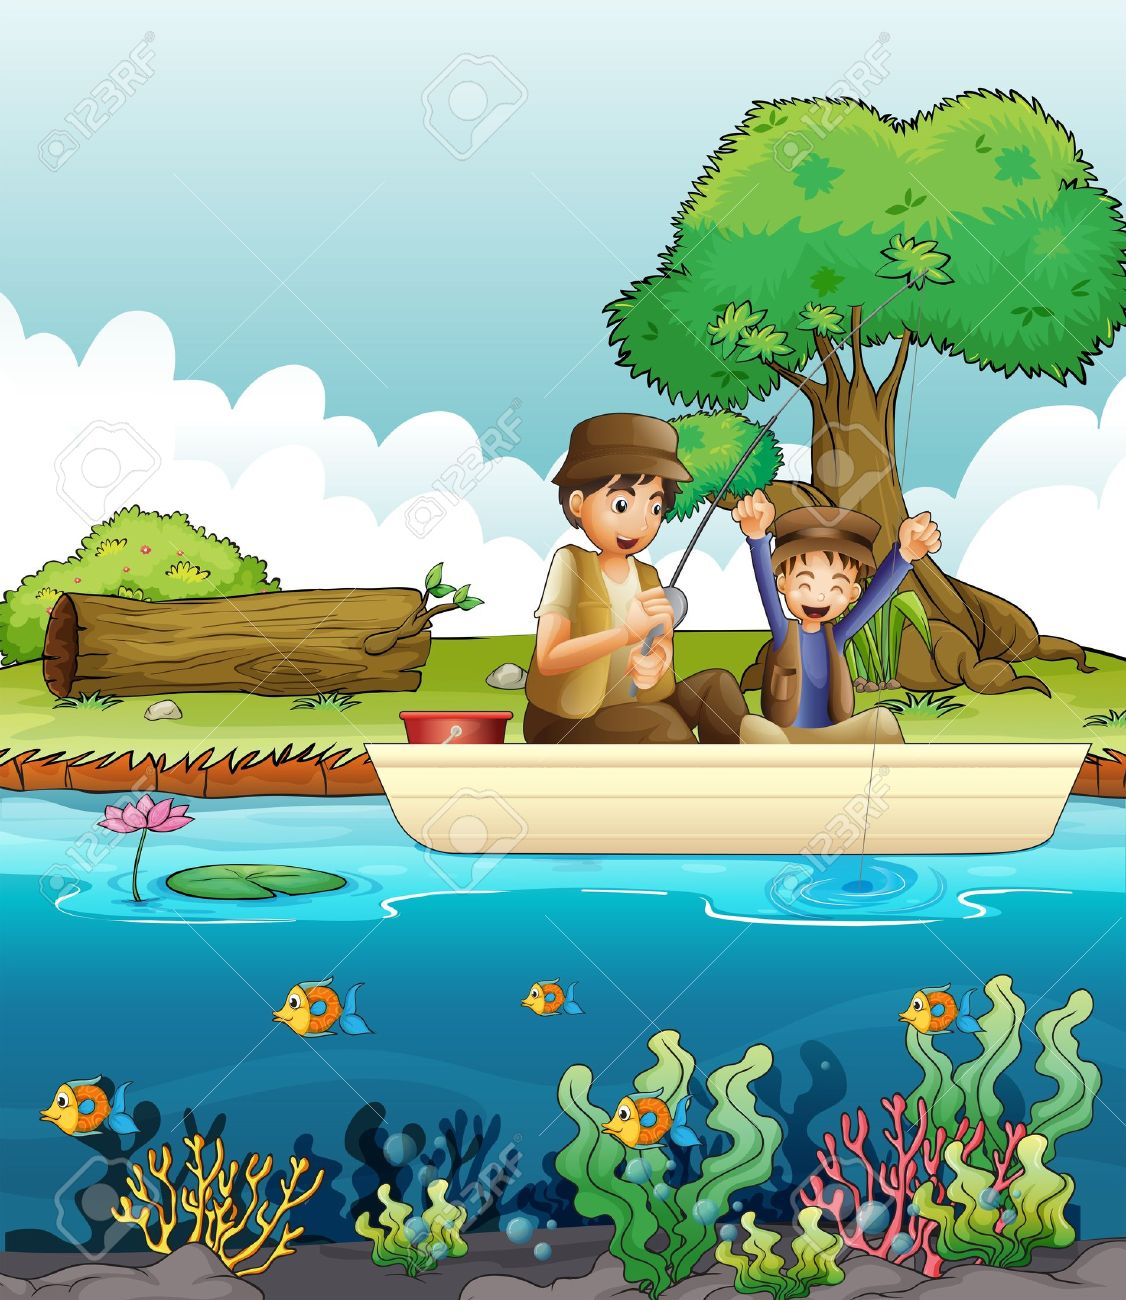 fishing in river clipart clipground Boat Clip Art Funny Fishing Clip Art